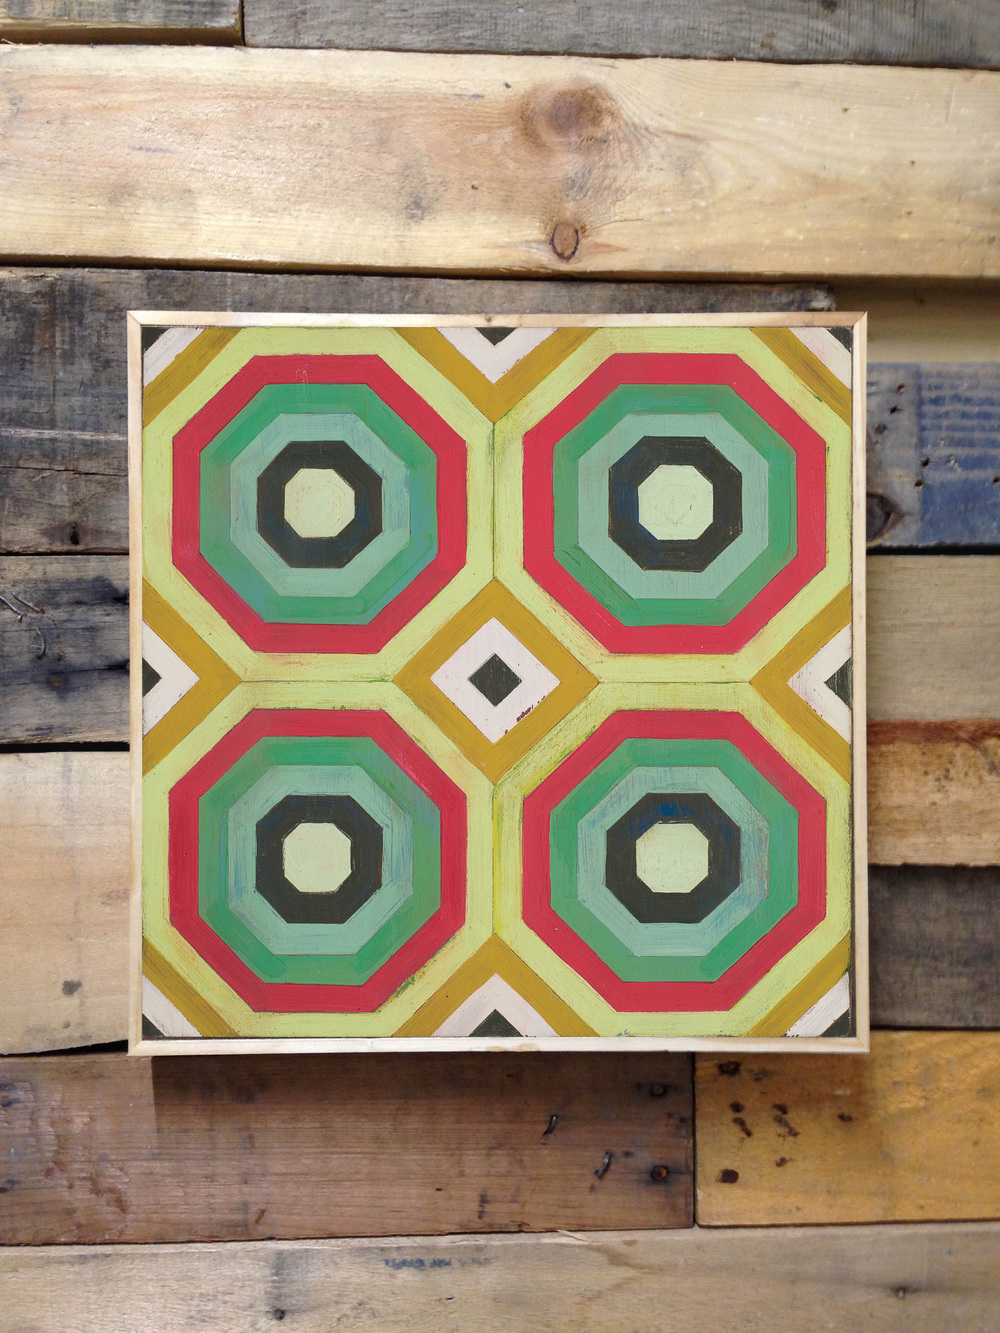 Hex patterned hardwood floor tile in 12x12 as framed repeated design